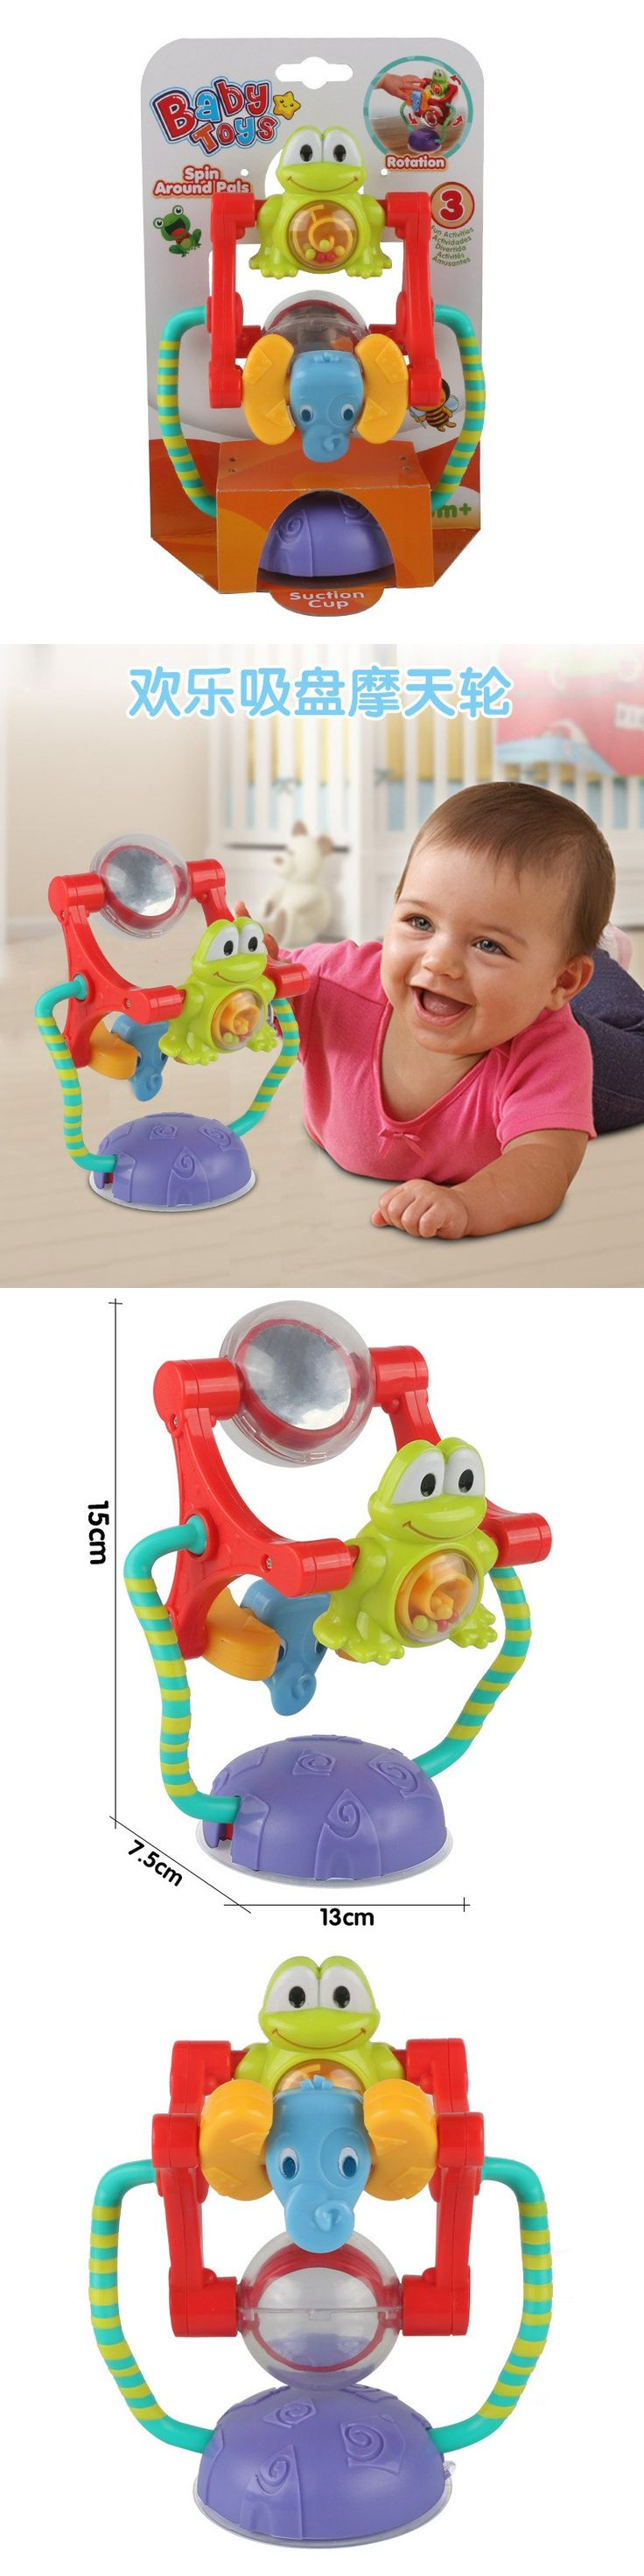 1269 best Toys for Babies & Toddlers images on Pinterest